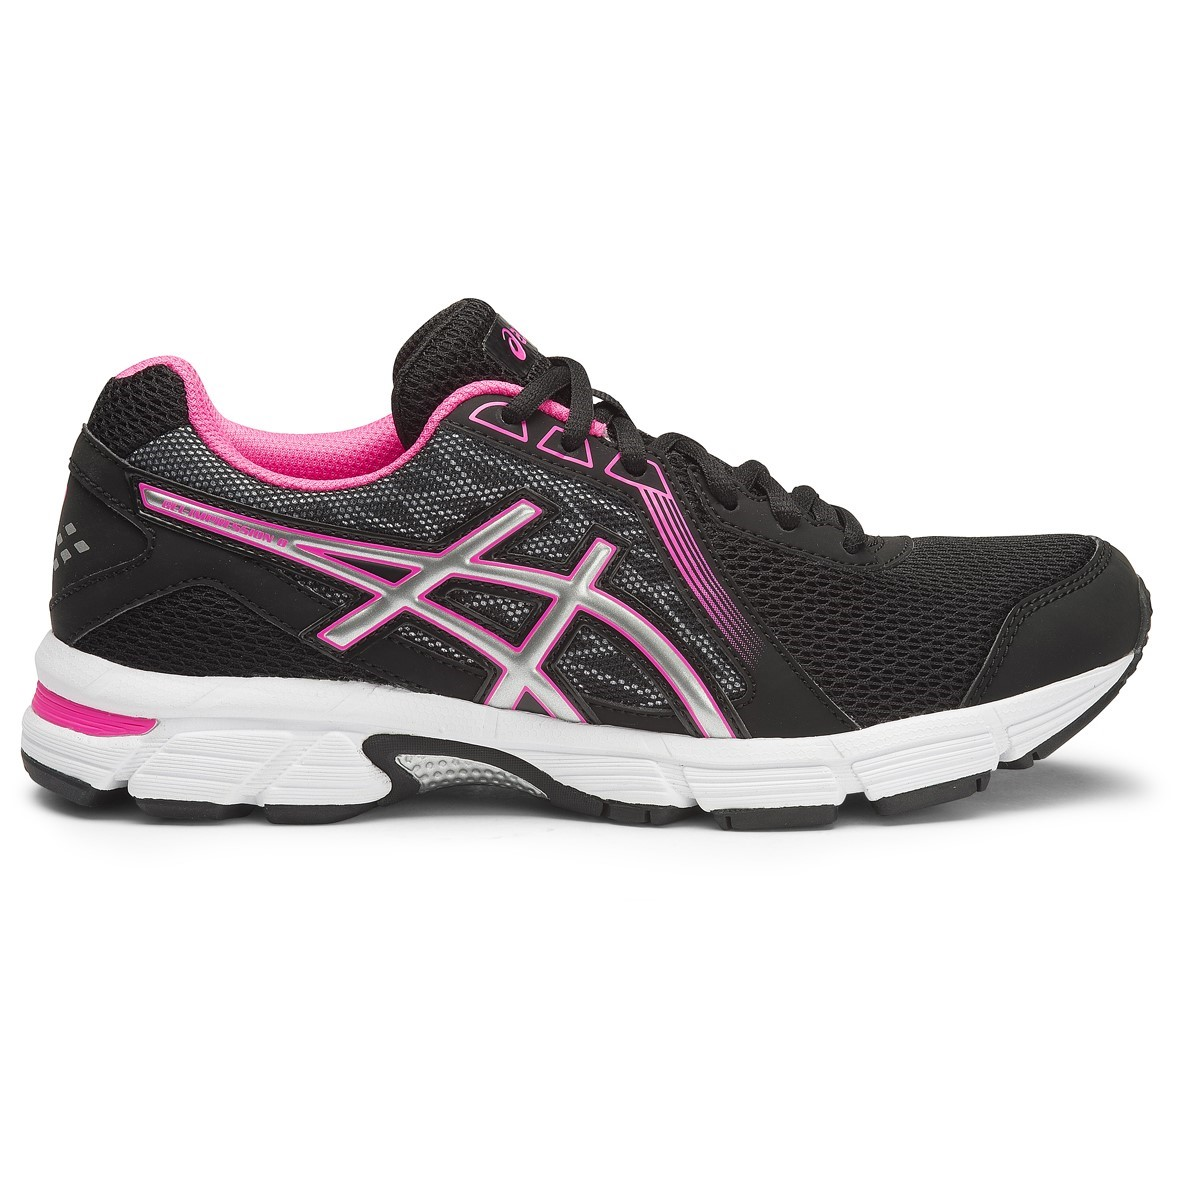 cd5a6885734a Asics Gel Impression 8 - Womens Running Shoes - Black Silver Pink Glow